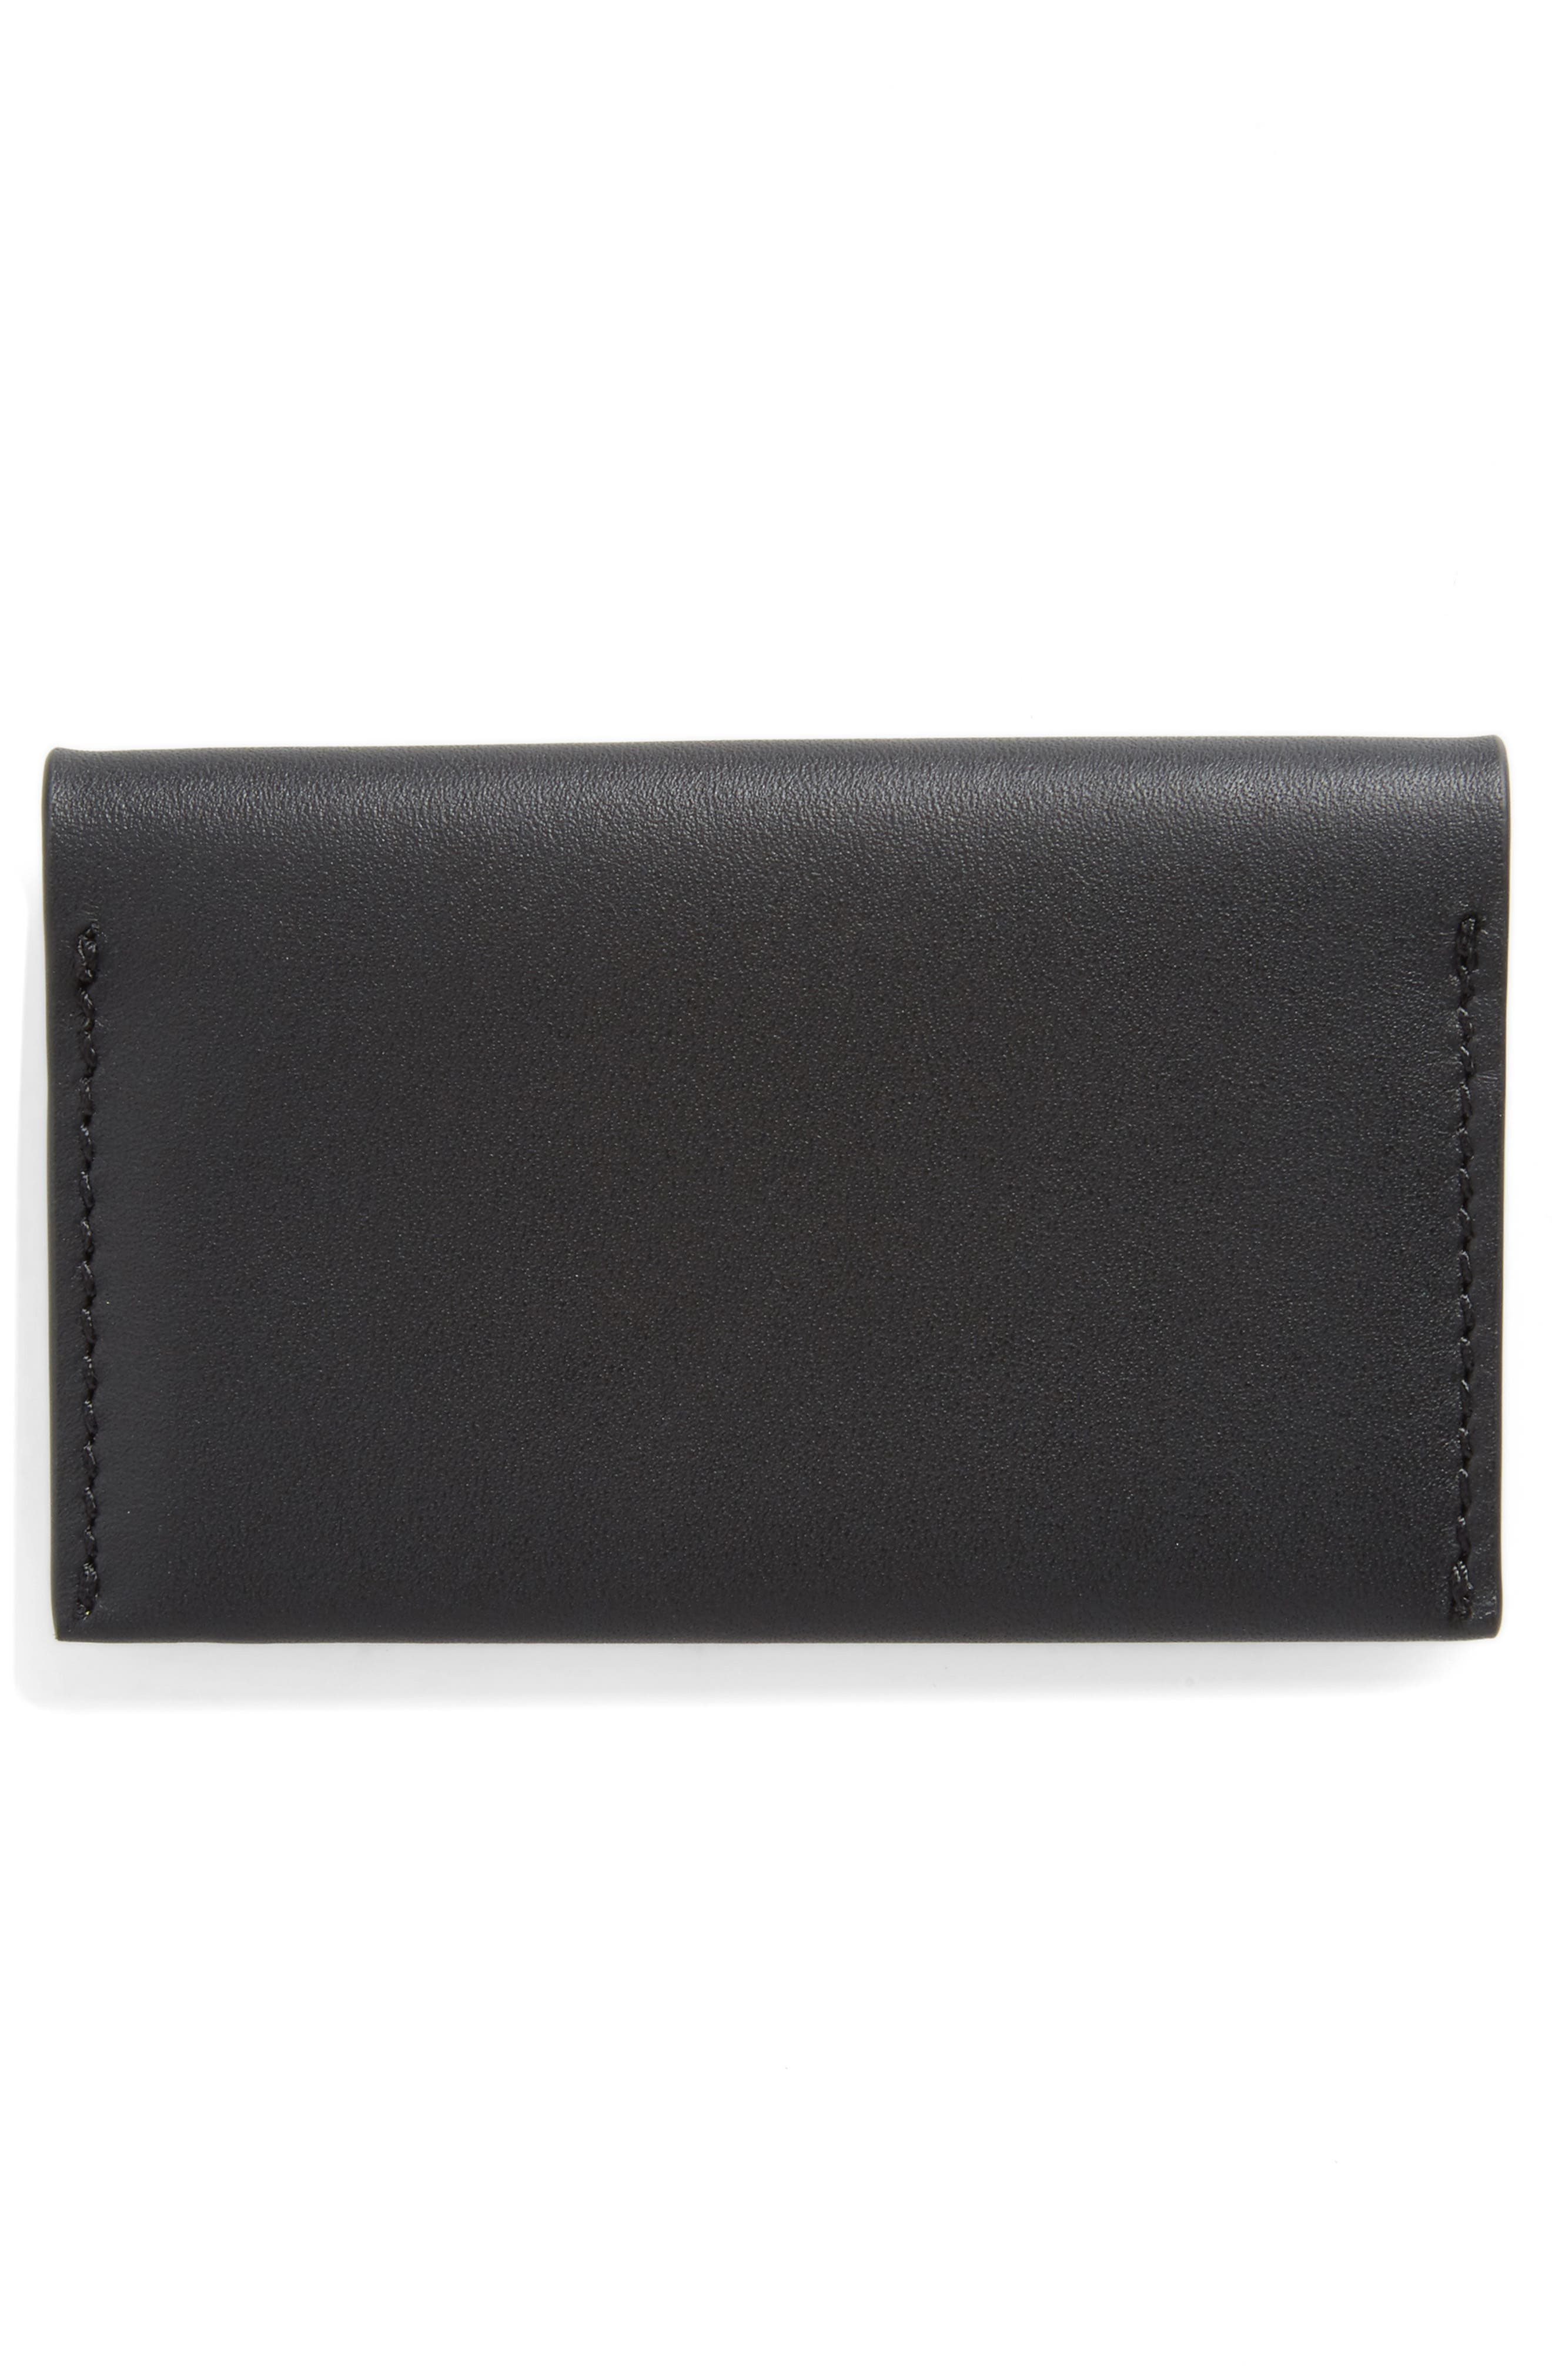 Leather Card Case,                             Alternate thumbnail 3, color,                             001